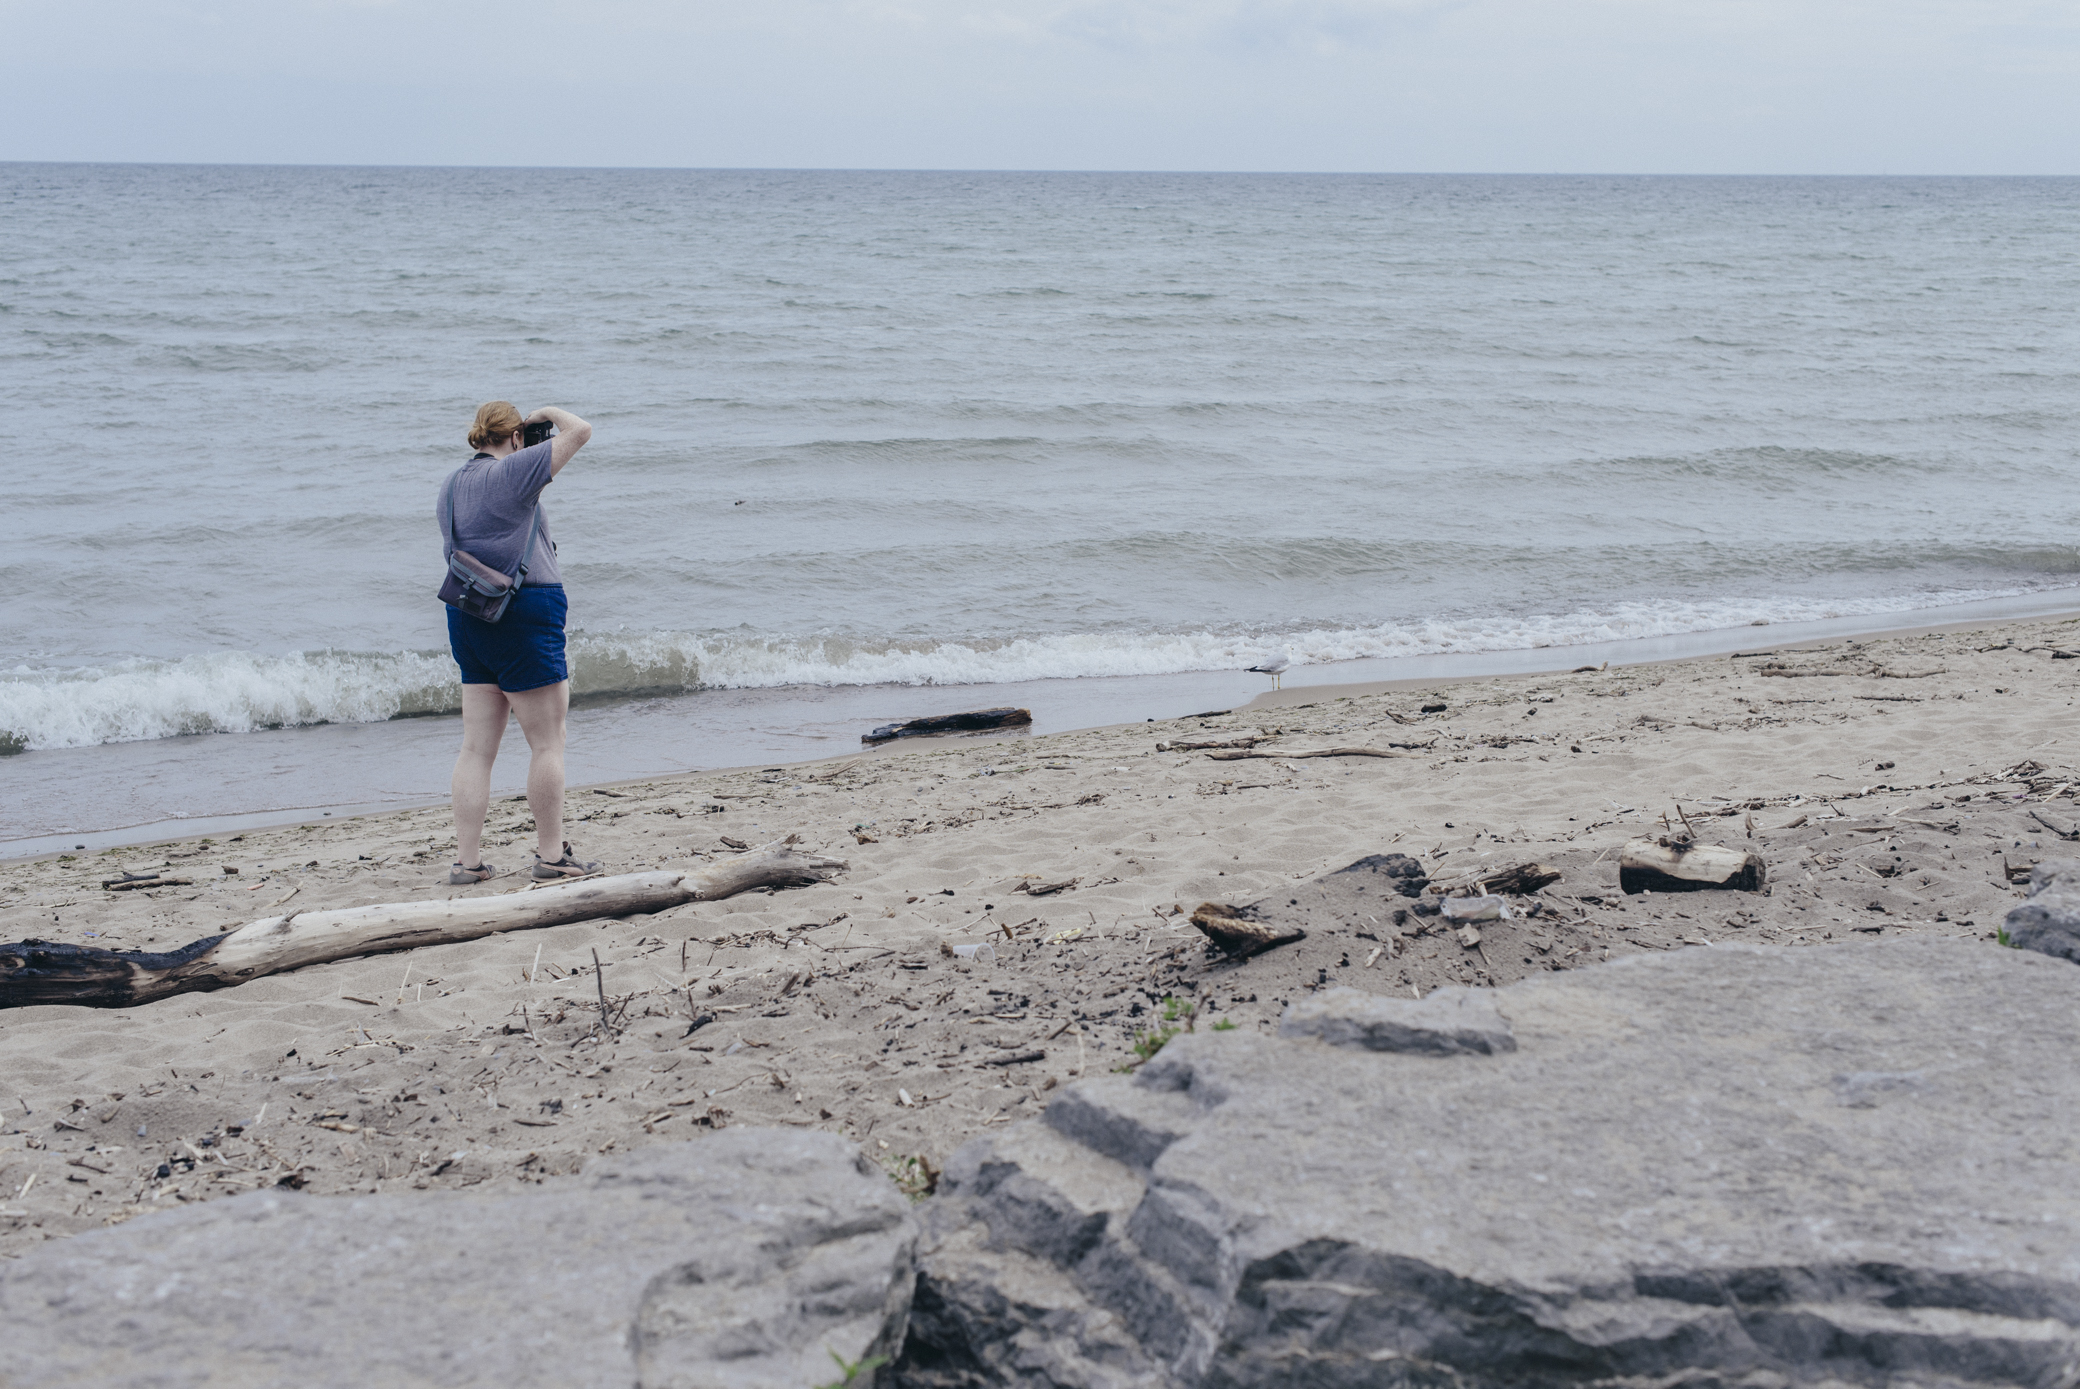 Photo of Yuli Scheidt from a location scout earlier this week for a collab we're doing.